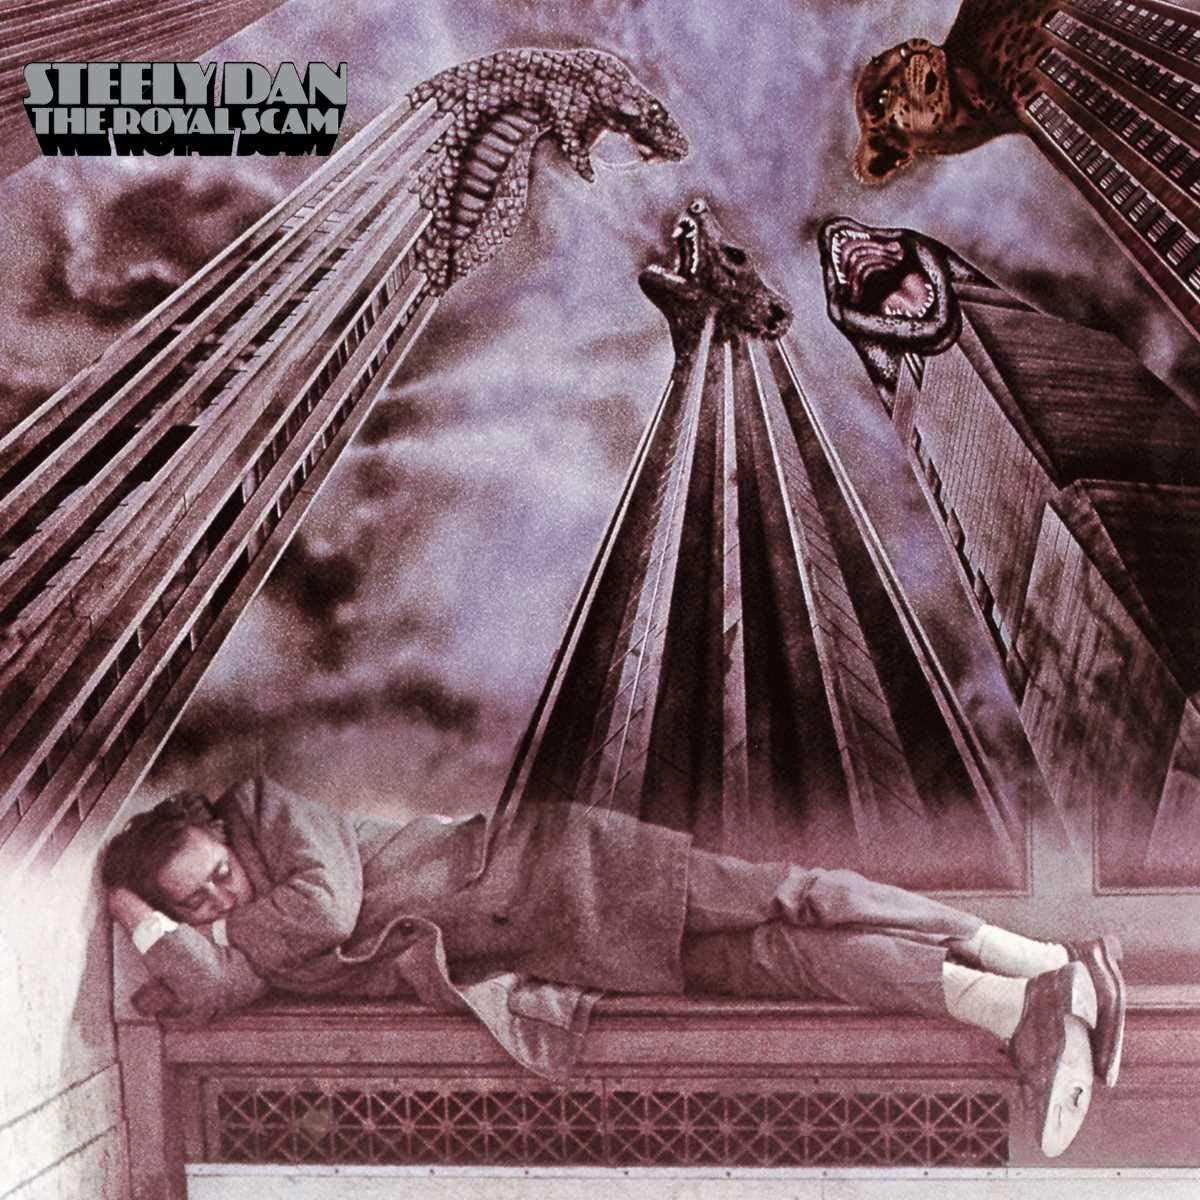 The Royal Scam: Steely Dan: Amazon.it: Musica